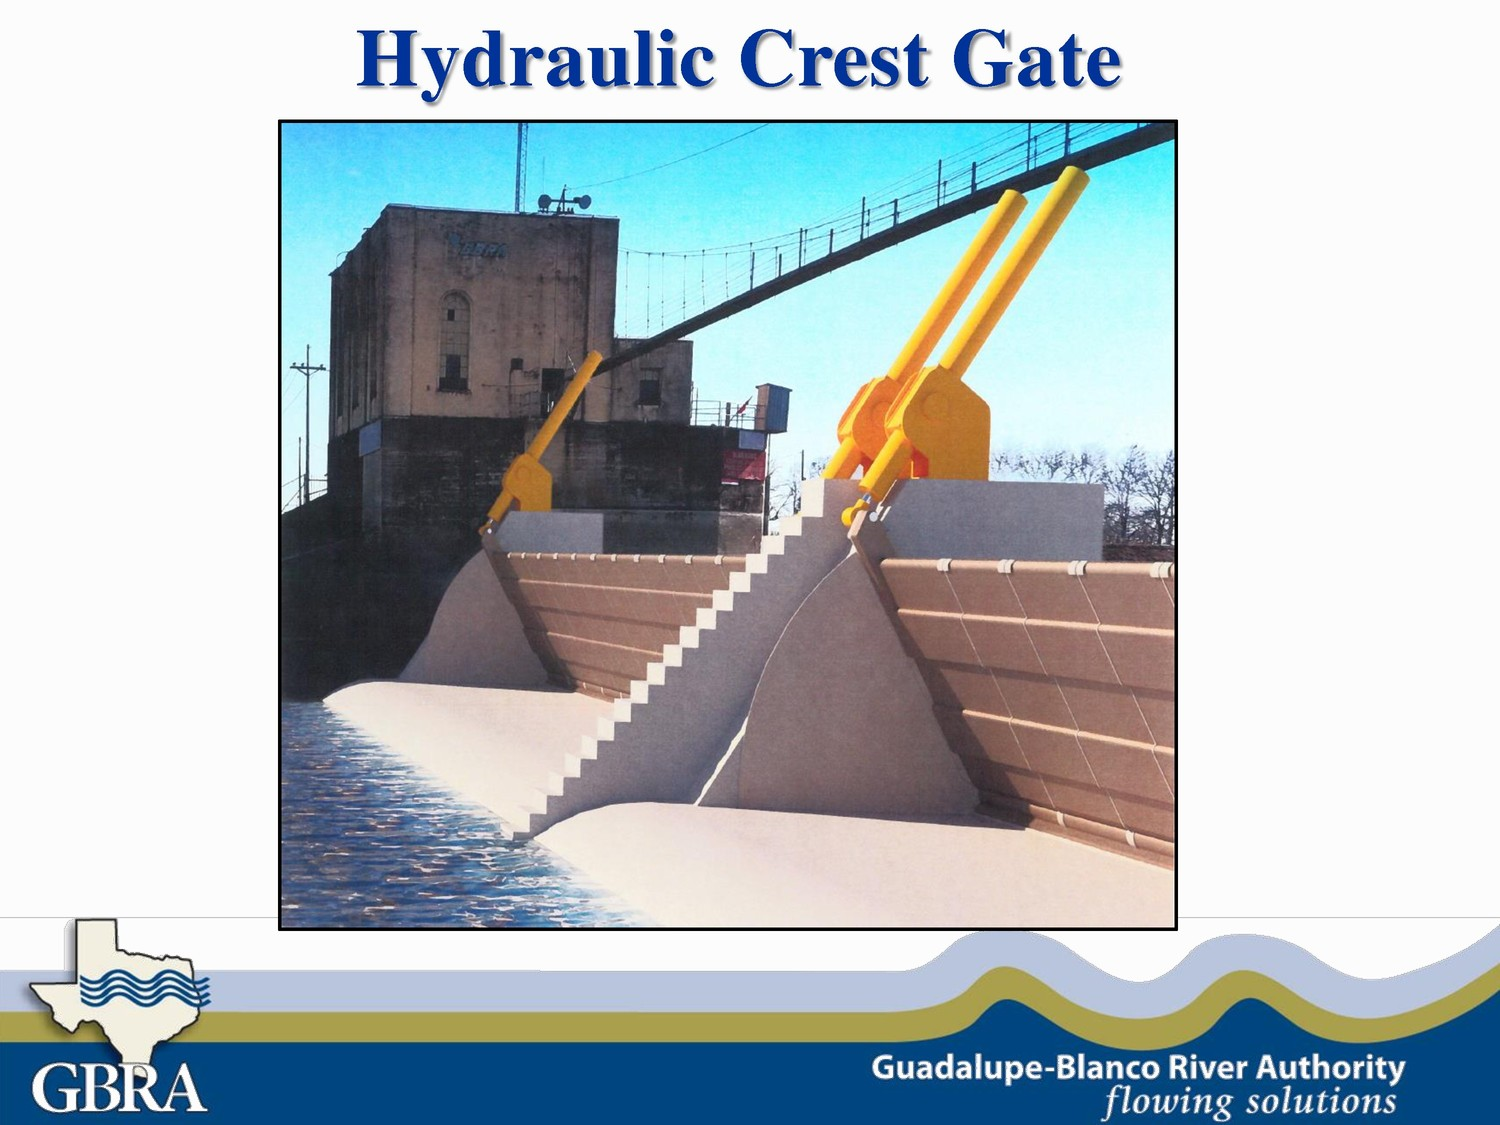 When the time comes, GBRA will be installing a hydraulic crest gate on the dam at Lake Wood. Authority staff claimed they will take at least a year of soil sampling to analyze before they can move forward.